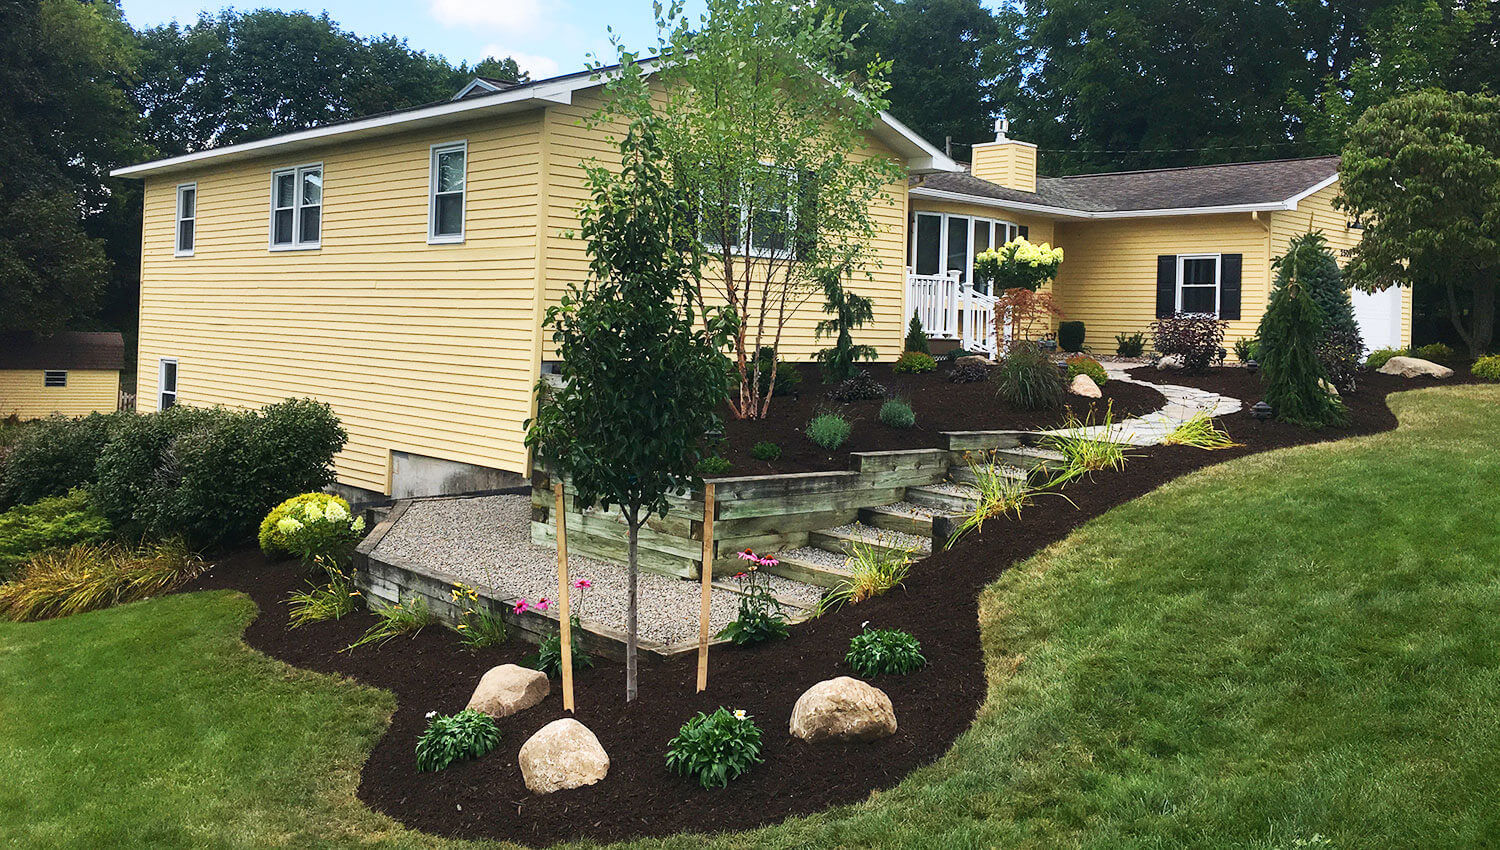 Outdoor Landscape Design-Denton TX Professional Landscapers & Outdoor Living Designs-We offer Landscape Design, Outdoor Patios & Pergolas, Outdoor Living Spaces, Stonescapes, Residential & Commercial Landscaping, Irrigation Installation & Repairs, Drainage Systems, Landscape Lighting, Outdoor Living Spaces, Tree Service, Lawn Service, and more.